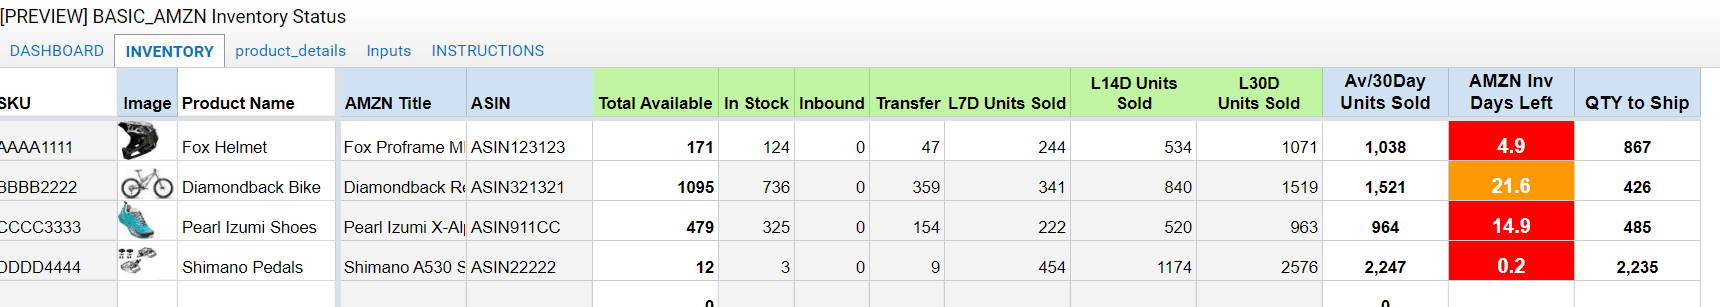 amazon excel warehouse inventory details tracking spreadsheet in stock